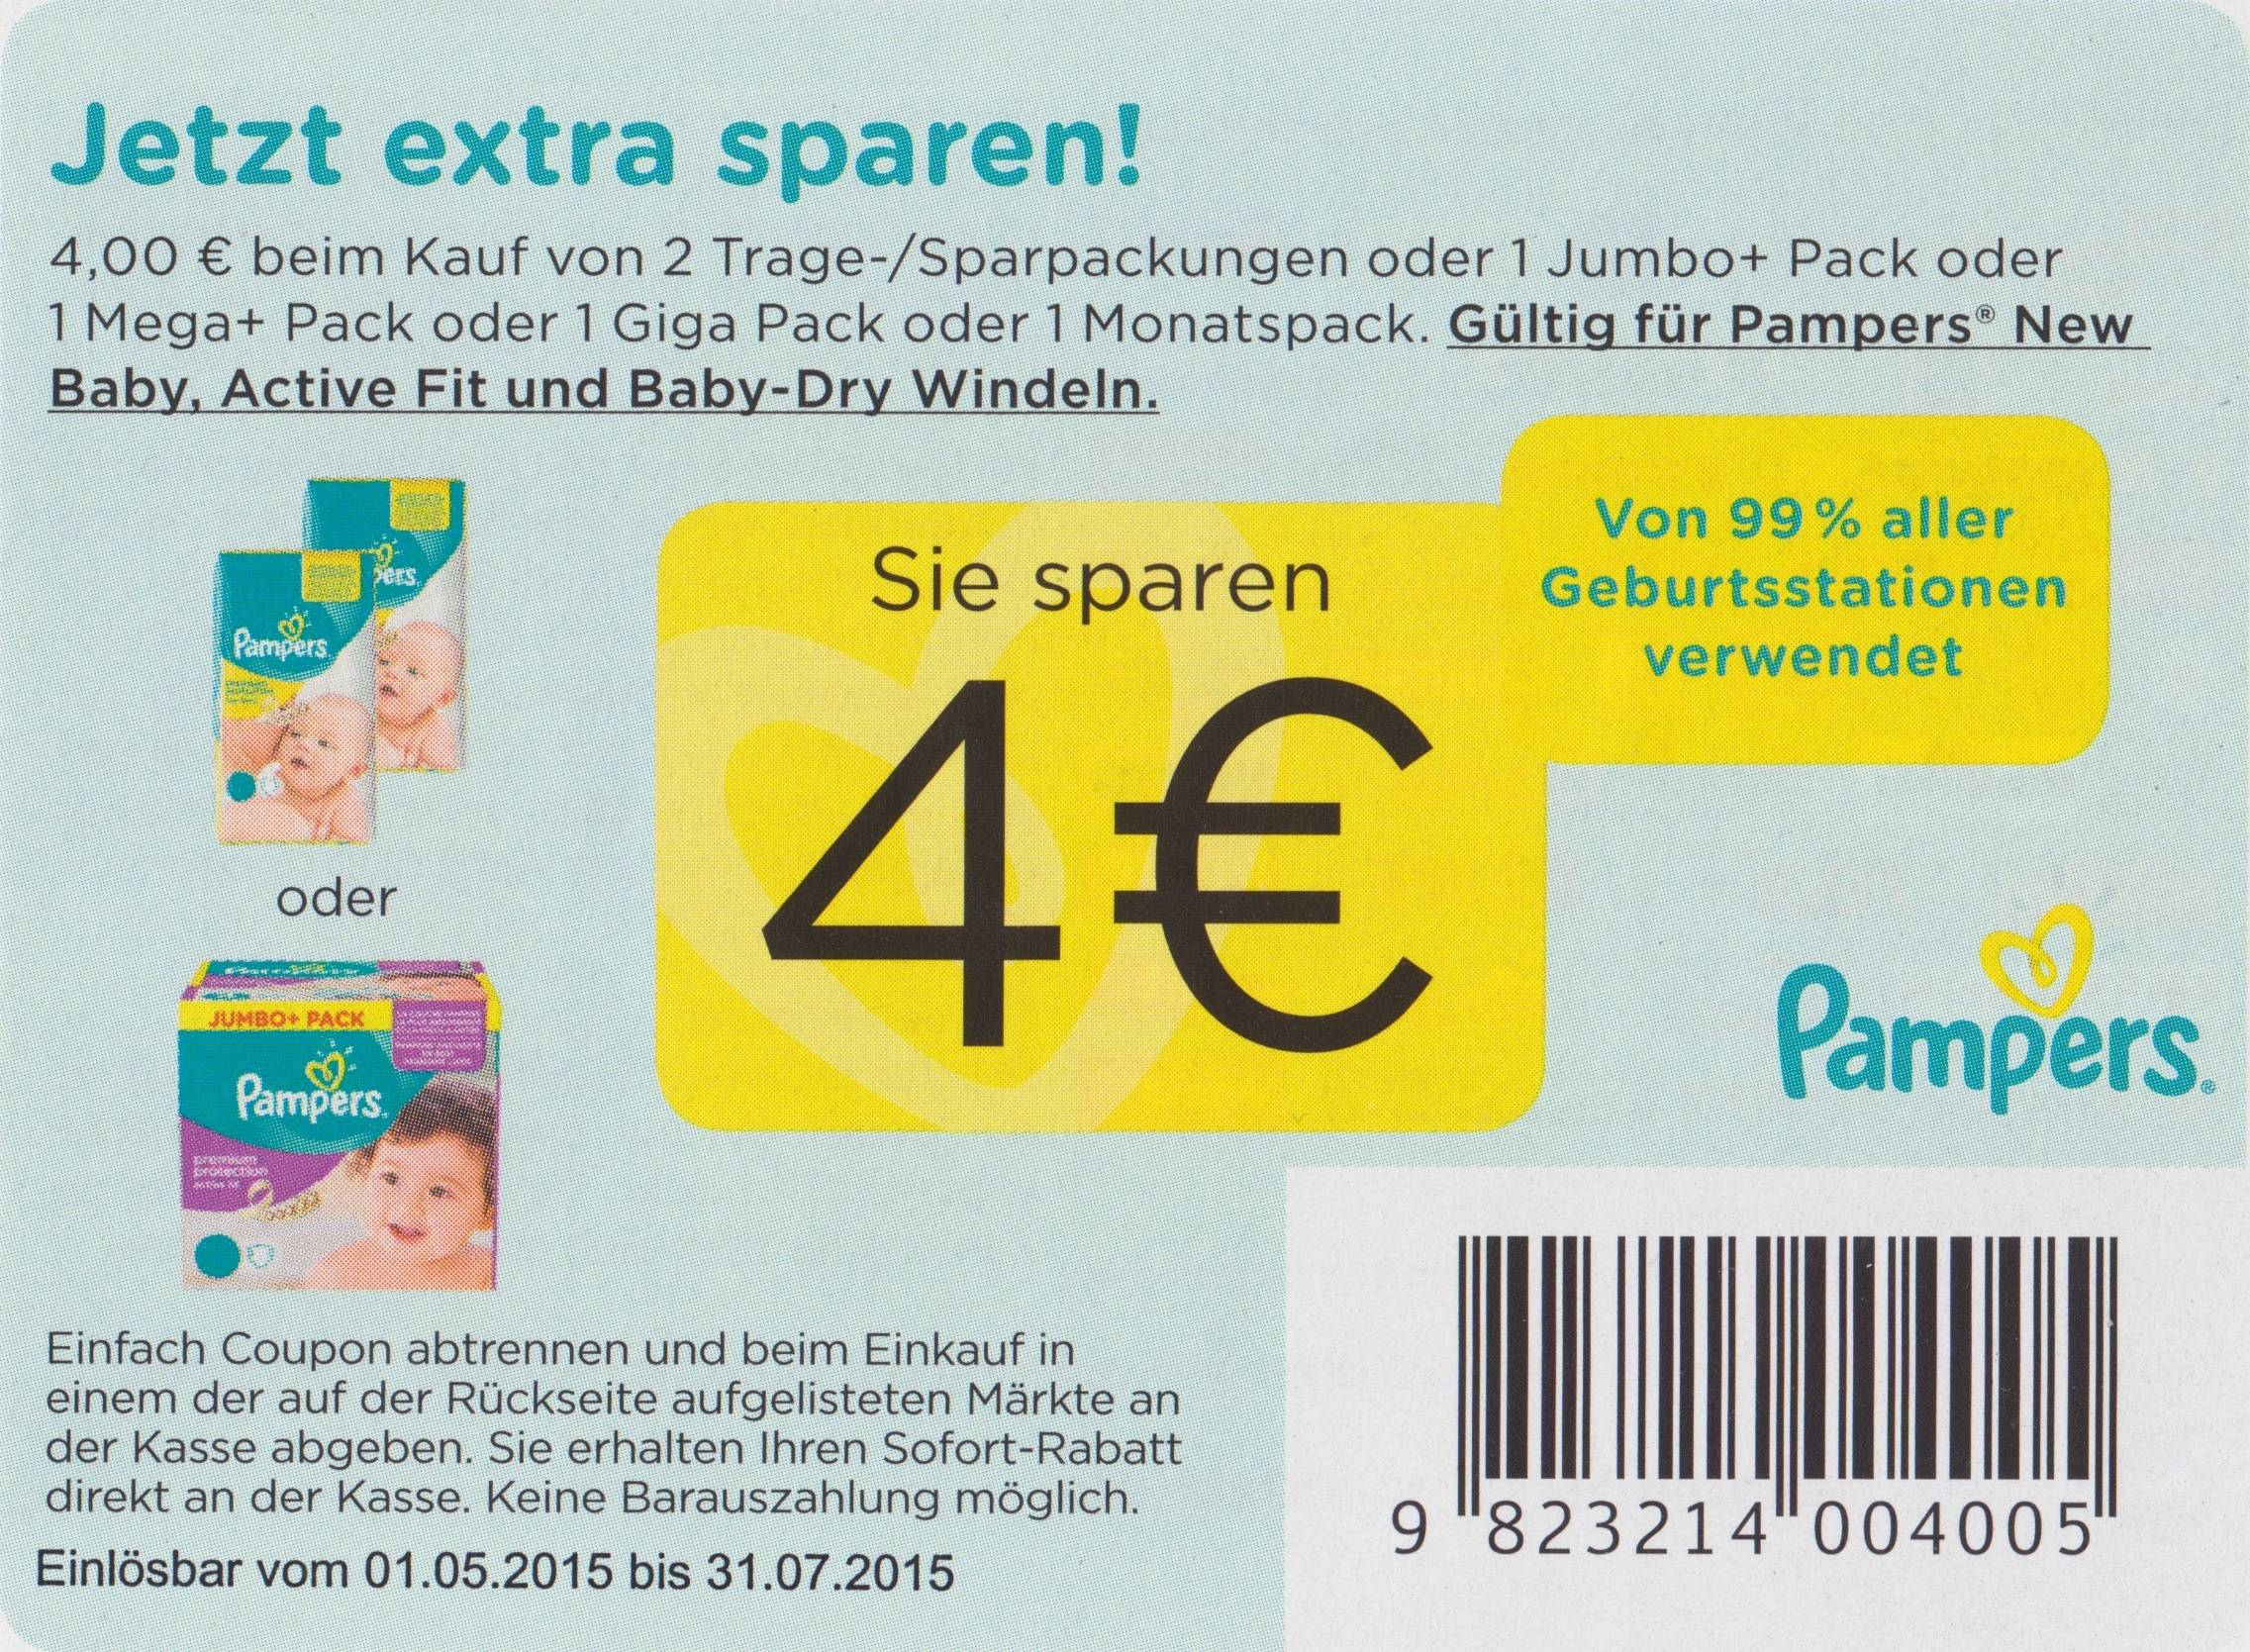 Pampers Coupons Zum Ausdrucken 2018 - Deals Birthday Party Supplies - Free Printable Spiriva Coupons